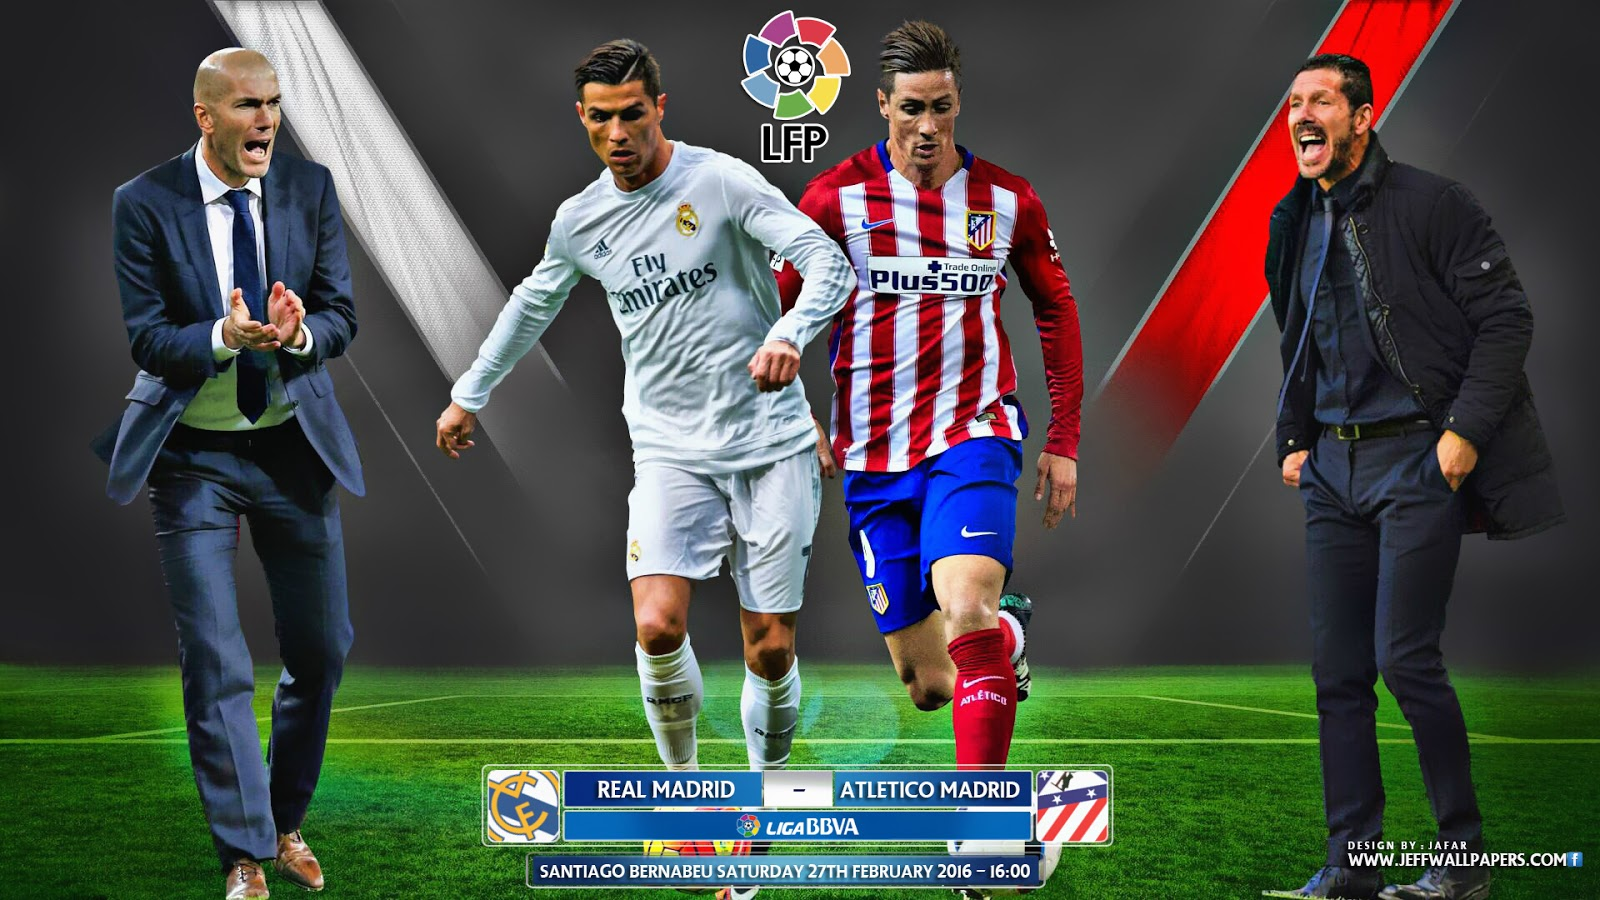 Real Madrid Vs Atletico Madrid Live Champions League Final ...